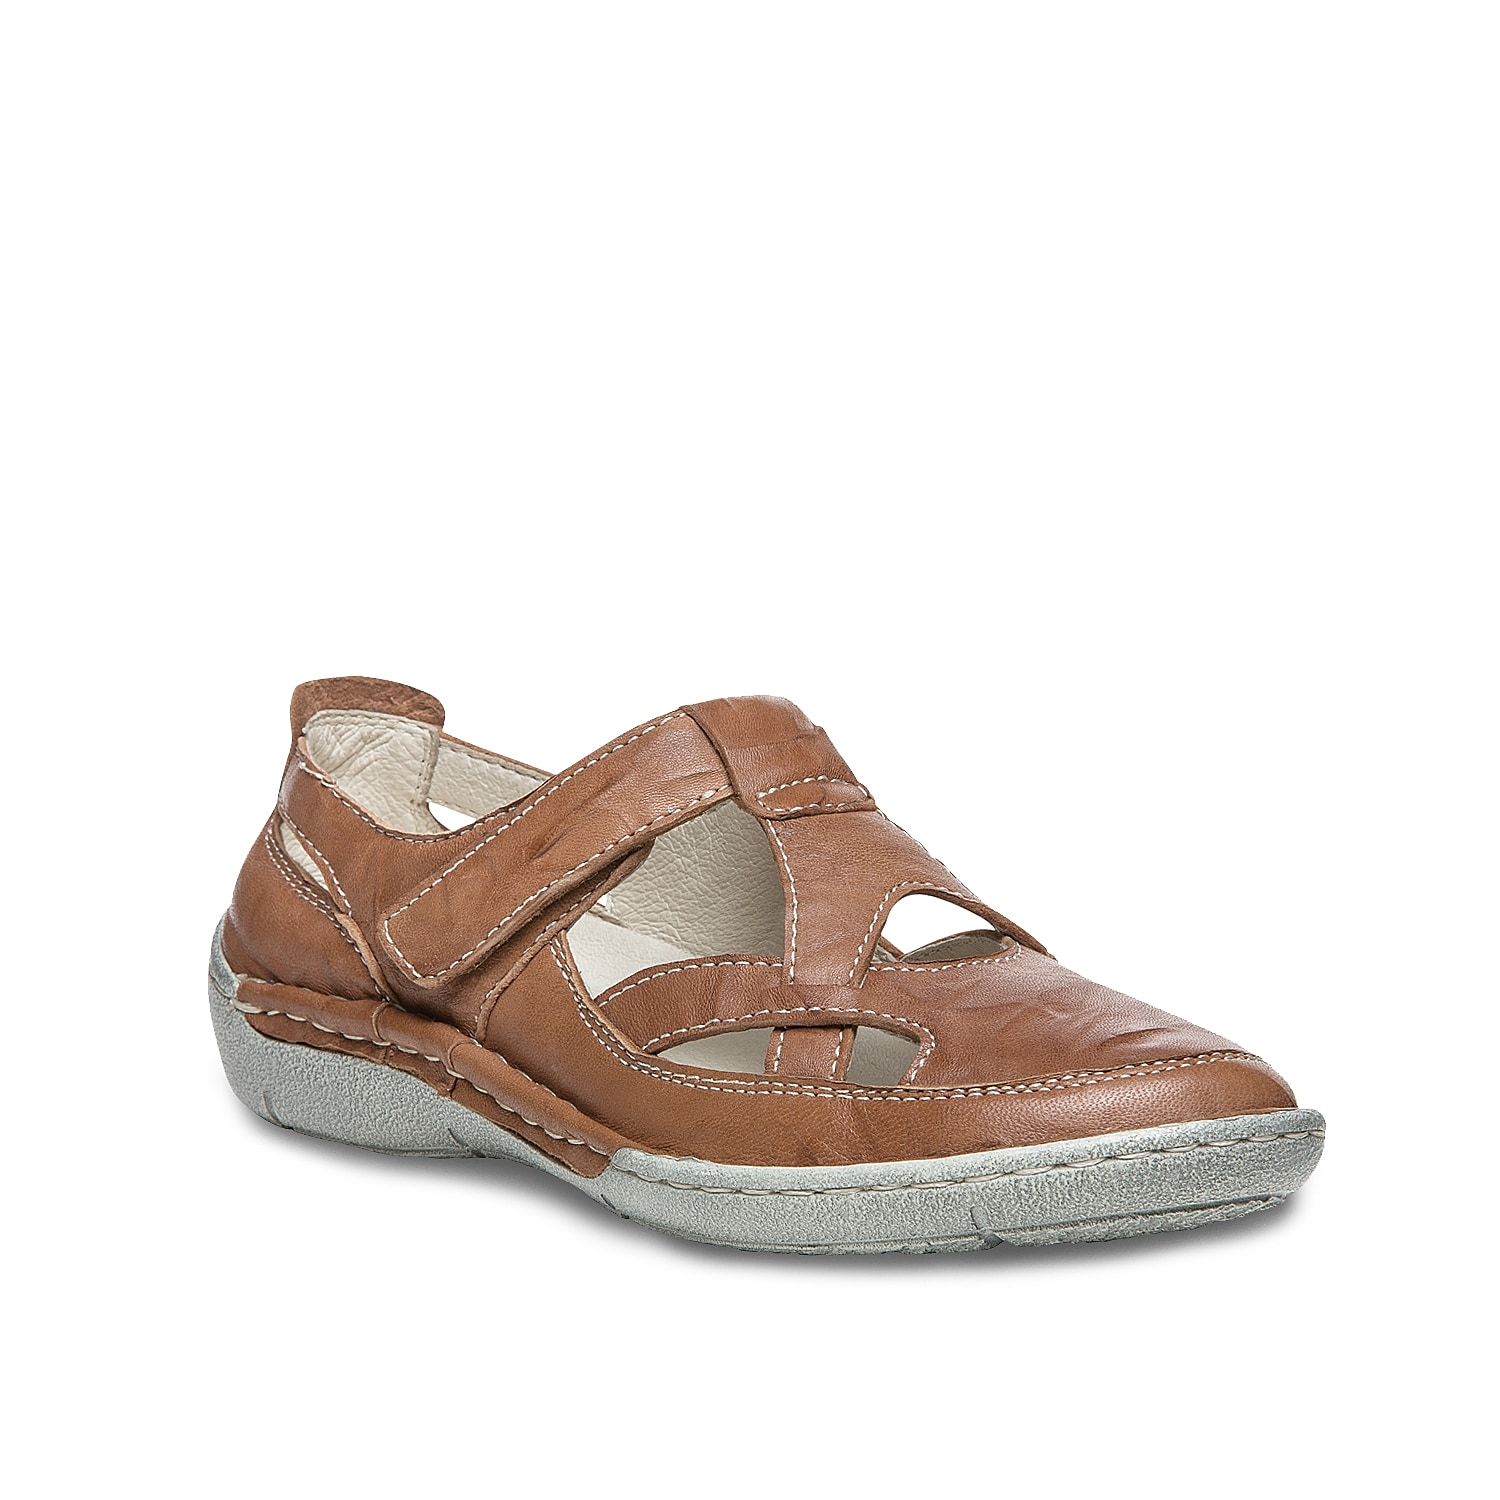 Be comfortable and cute all season long with the Caylee flats from Propet. A lightweight sole and leather lining provide flexibility and traction for your smoothest walk yet.